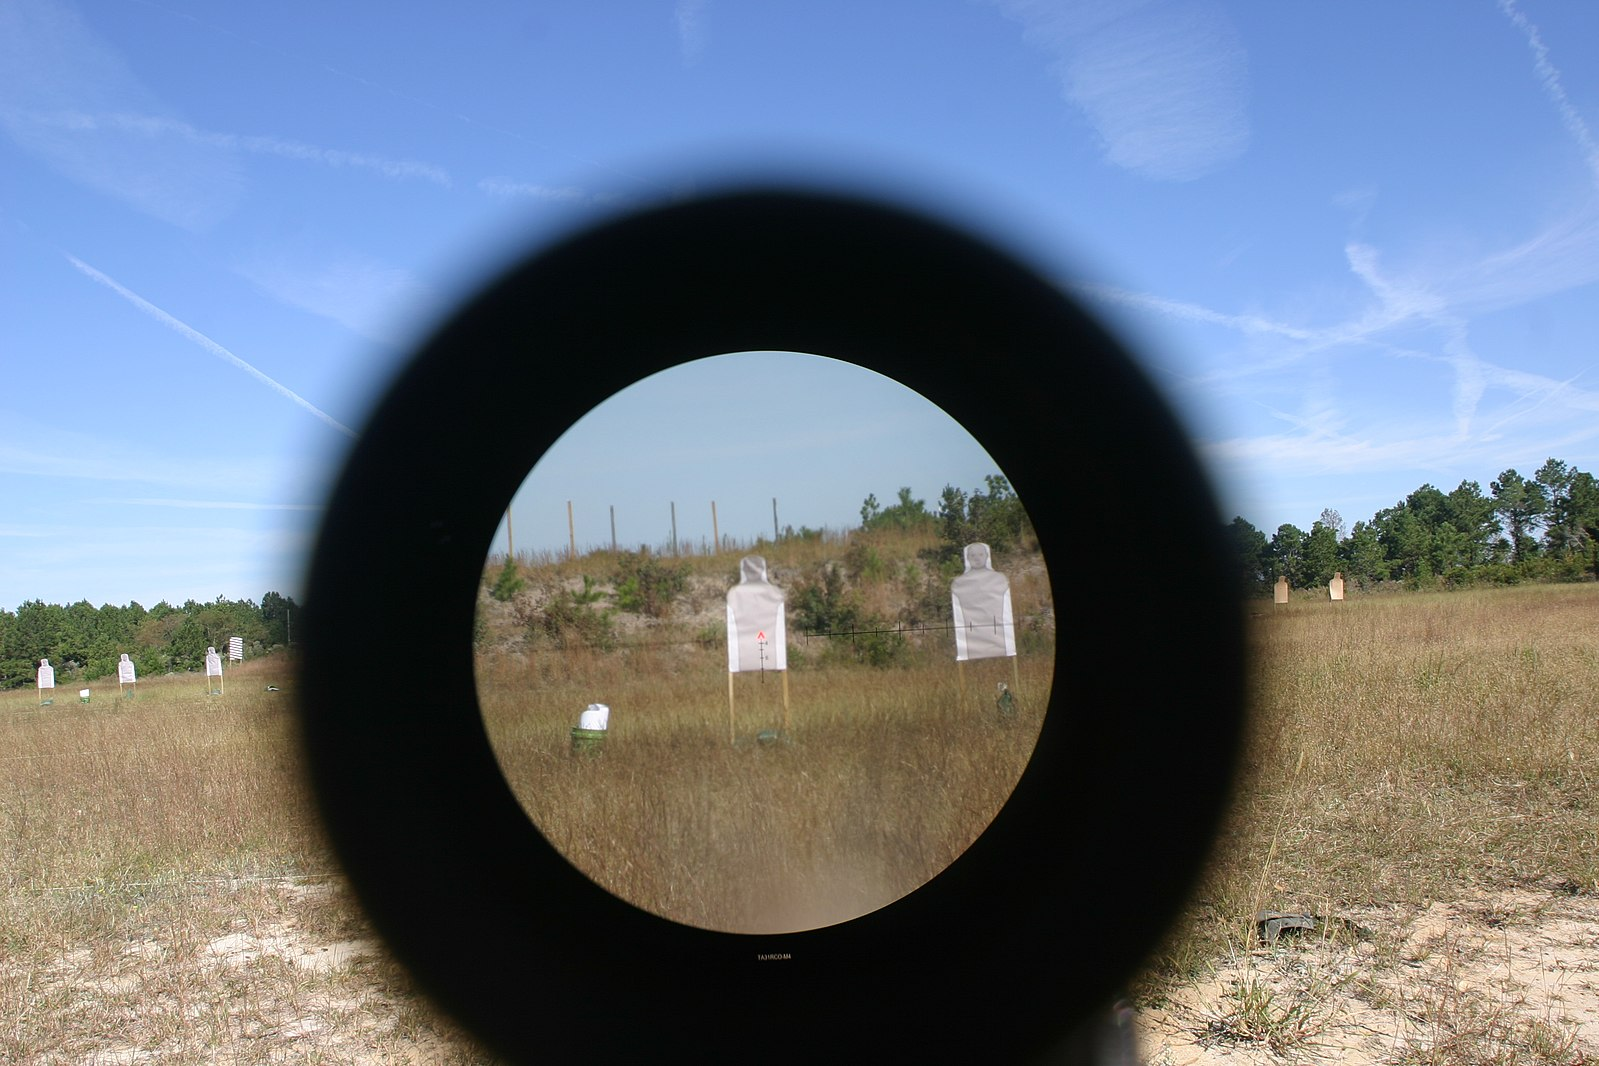 target on sight through the scope